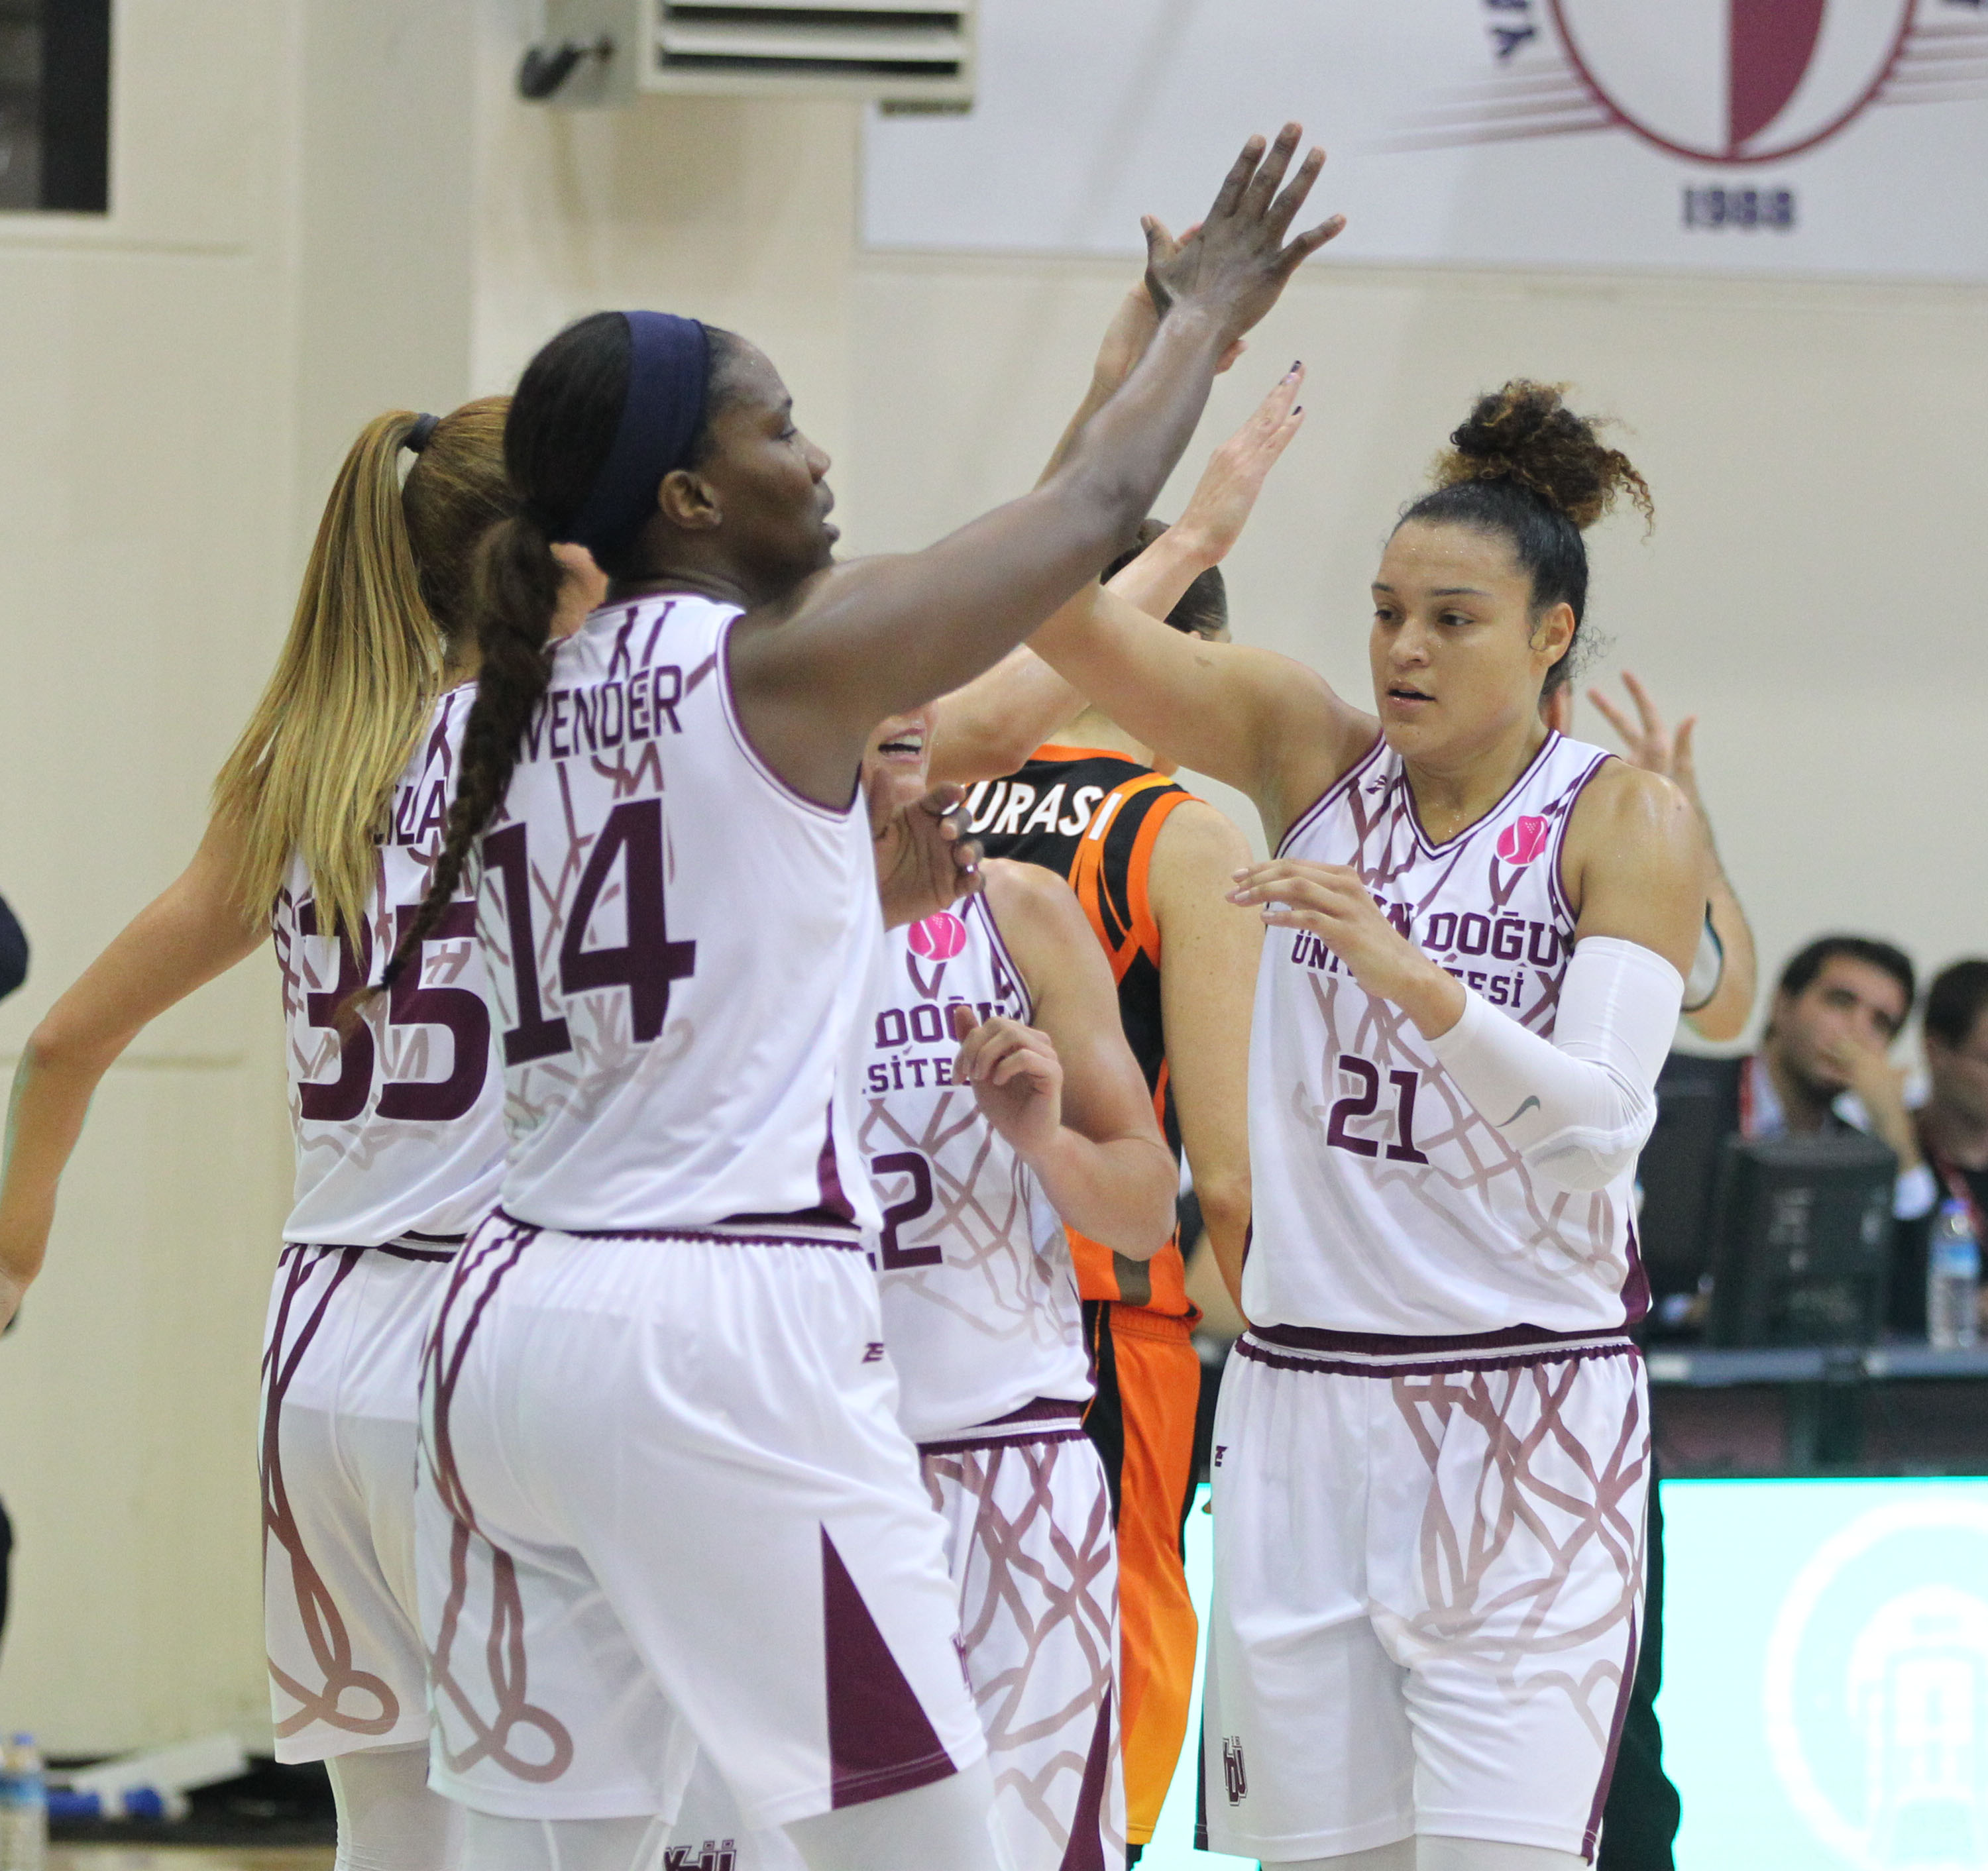 First Defeat in Europe … Near East University: 70 -UMMC Ekaterinburg: 79